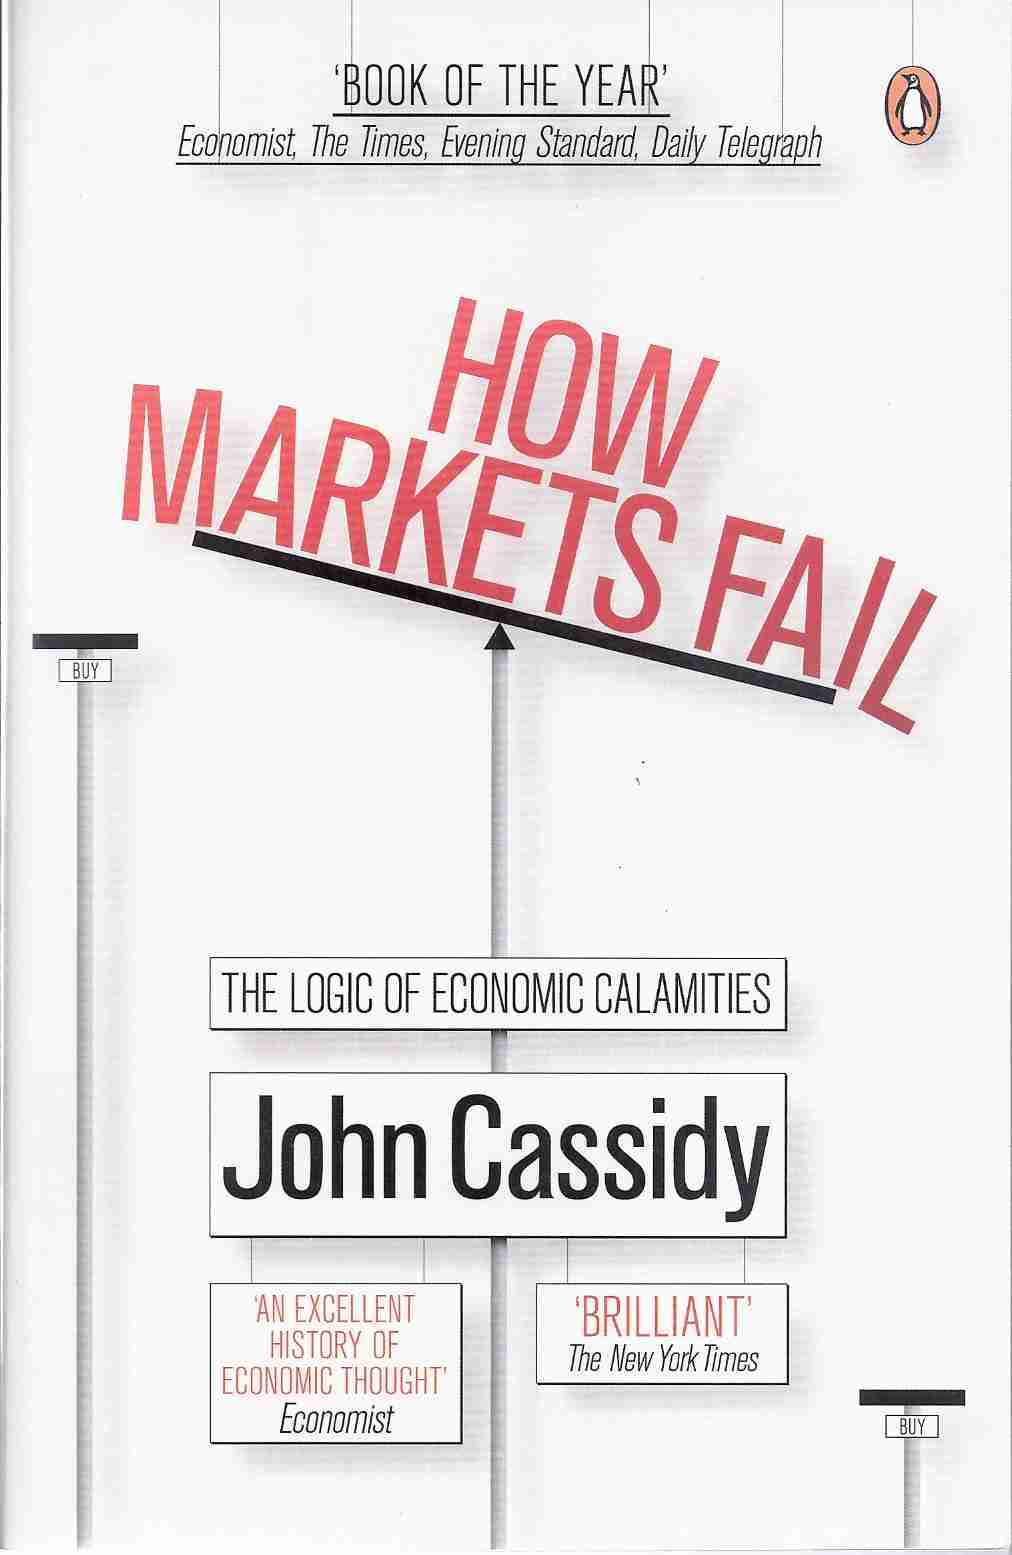 how markets fail The failure of private decisions in the marketplace to achieve an efficient allocation of scarce resources is called market failure markets will not generate an efficient allocation of resources if they are not competitive or if property rights are not well defined and fully transferable.